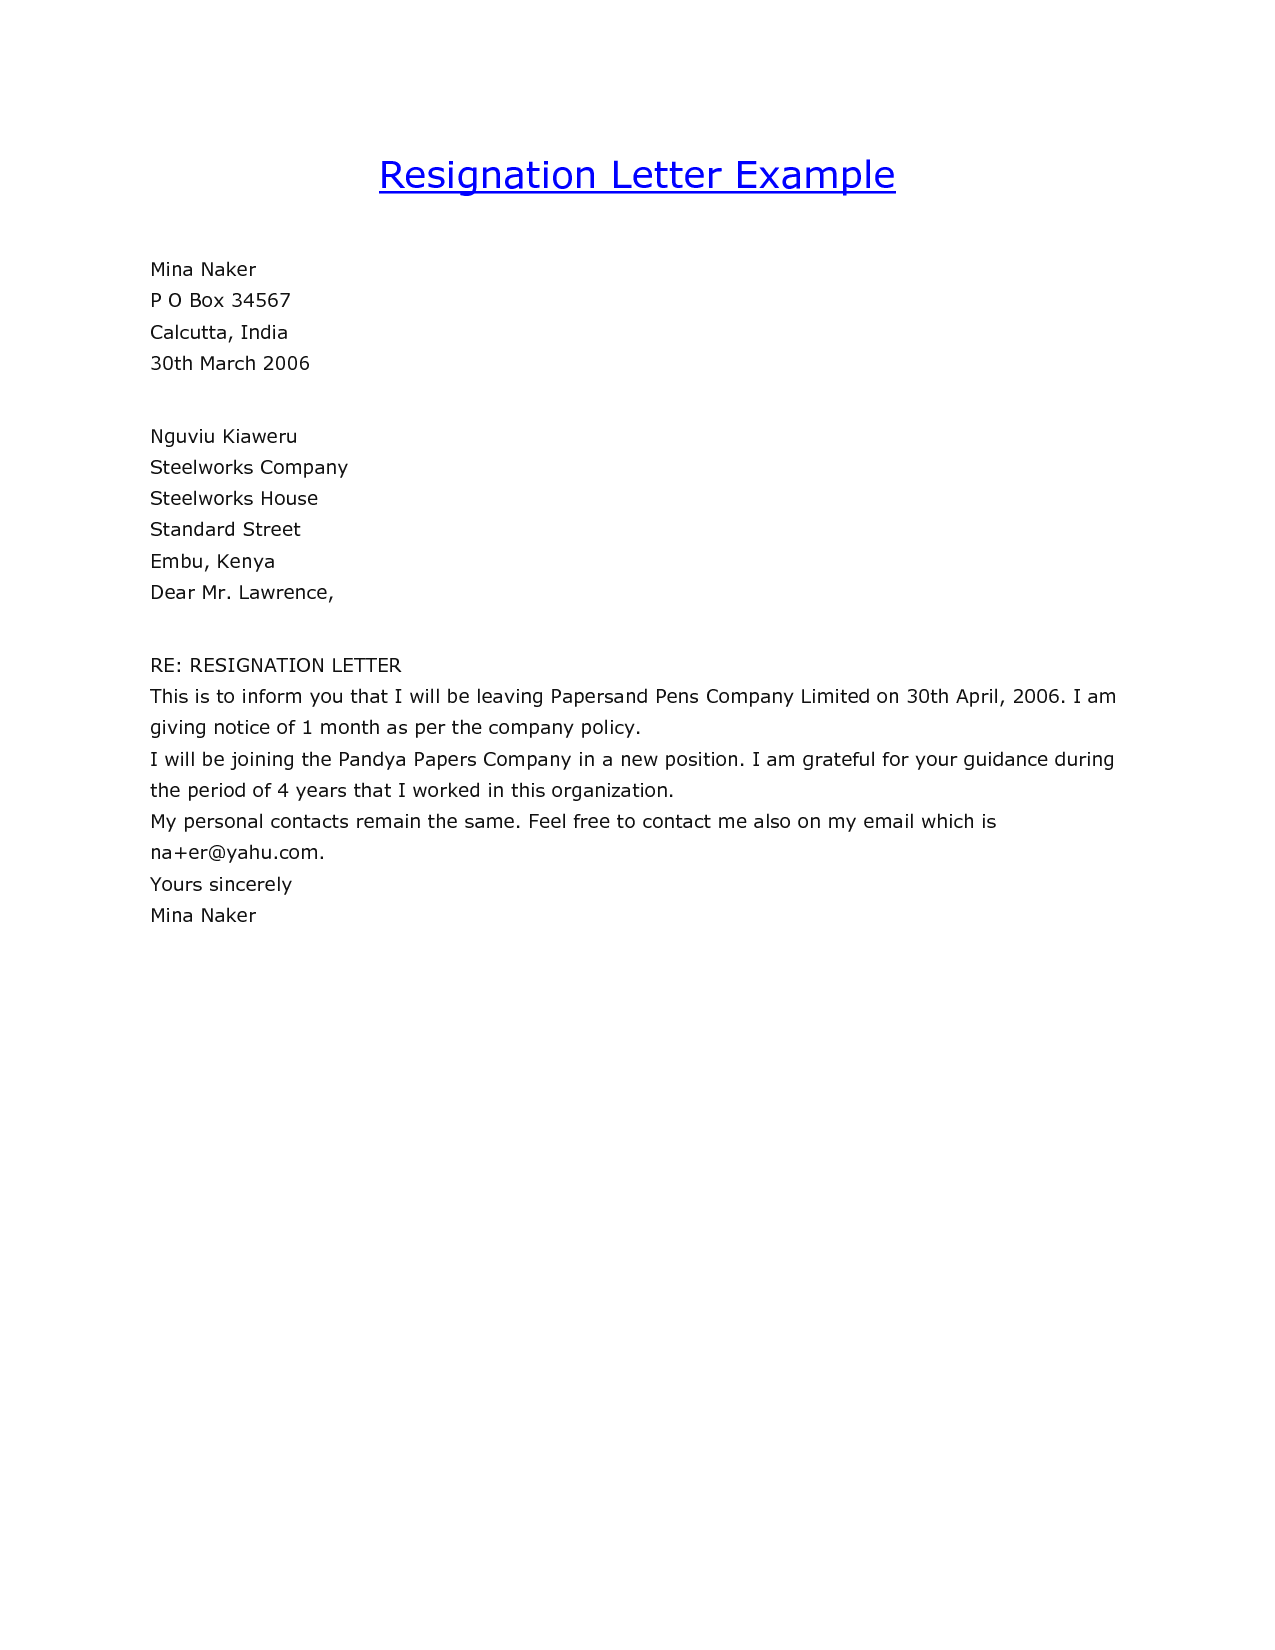 write resignation letter example Steps for writing a resignation letter specify the name of the organization from which you are resigning, your name, position, and address, as well as the name and the position of your recipient at the top of the letter.